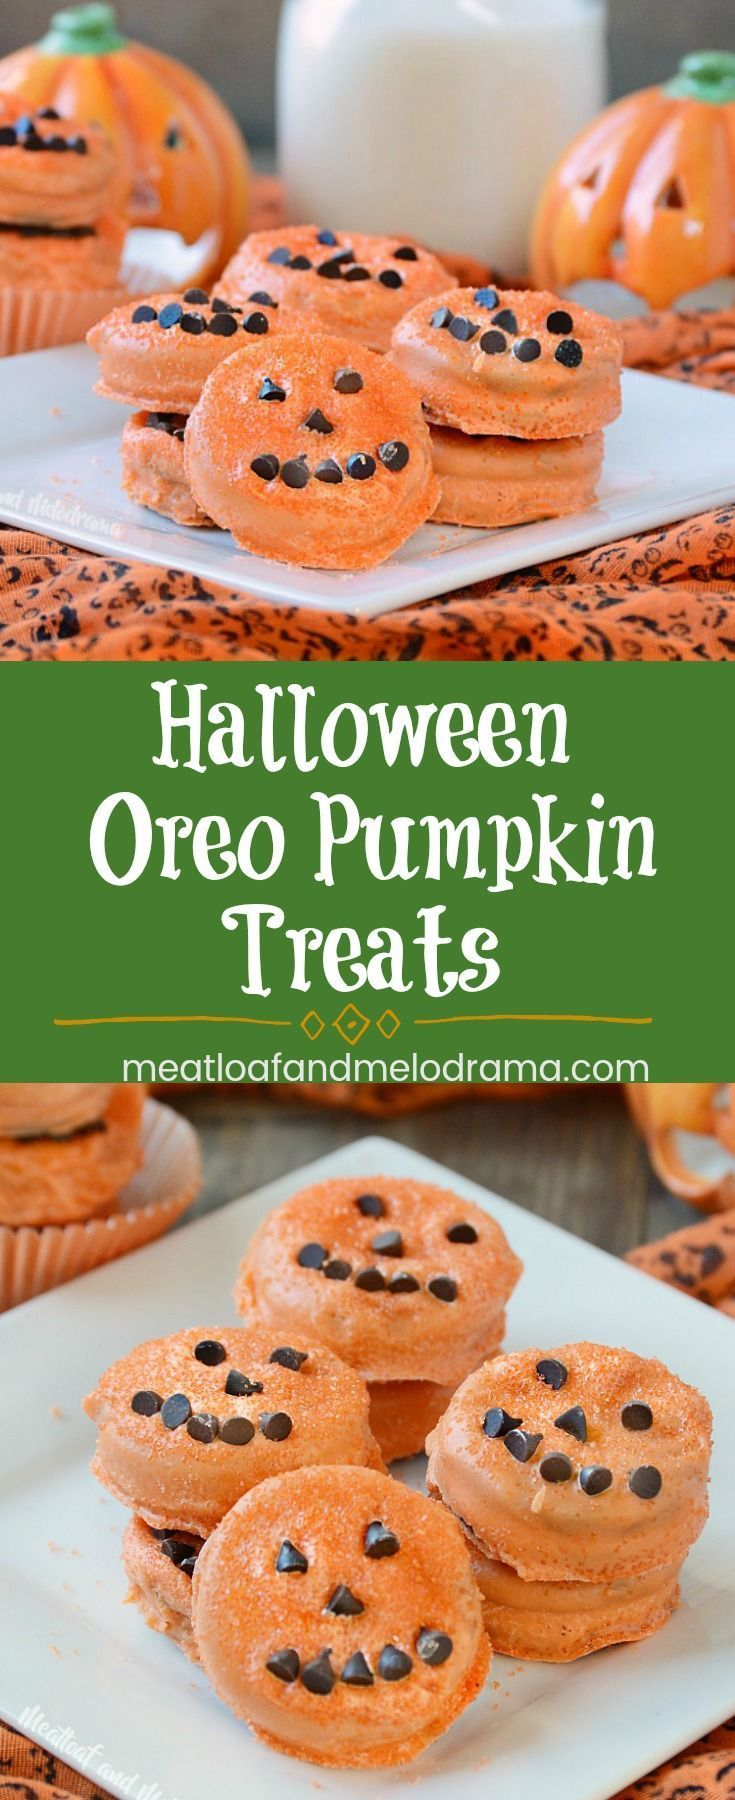 Halloween Oreo Pumpkin Treats - Easy Halloween treats made with Oreo sandwich cookies, candy melts and chocolate chips. perfect for kids parties, snacks or dessert for the family! from Meatloaf and Melodrama #halloweenparty #Halloween #pumpkins